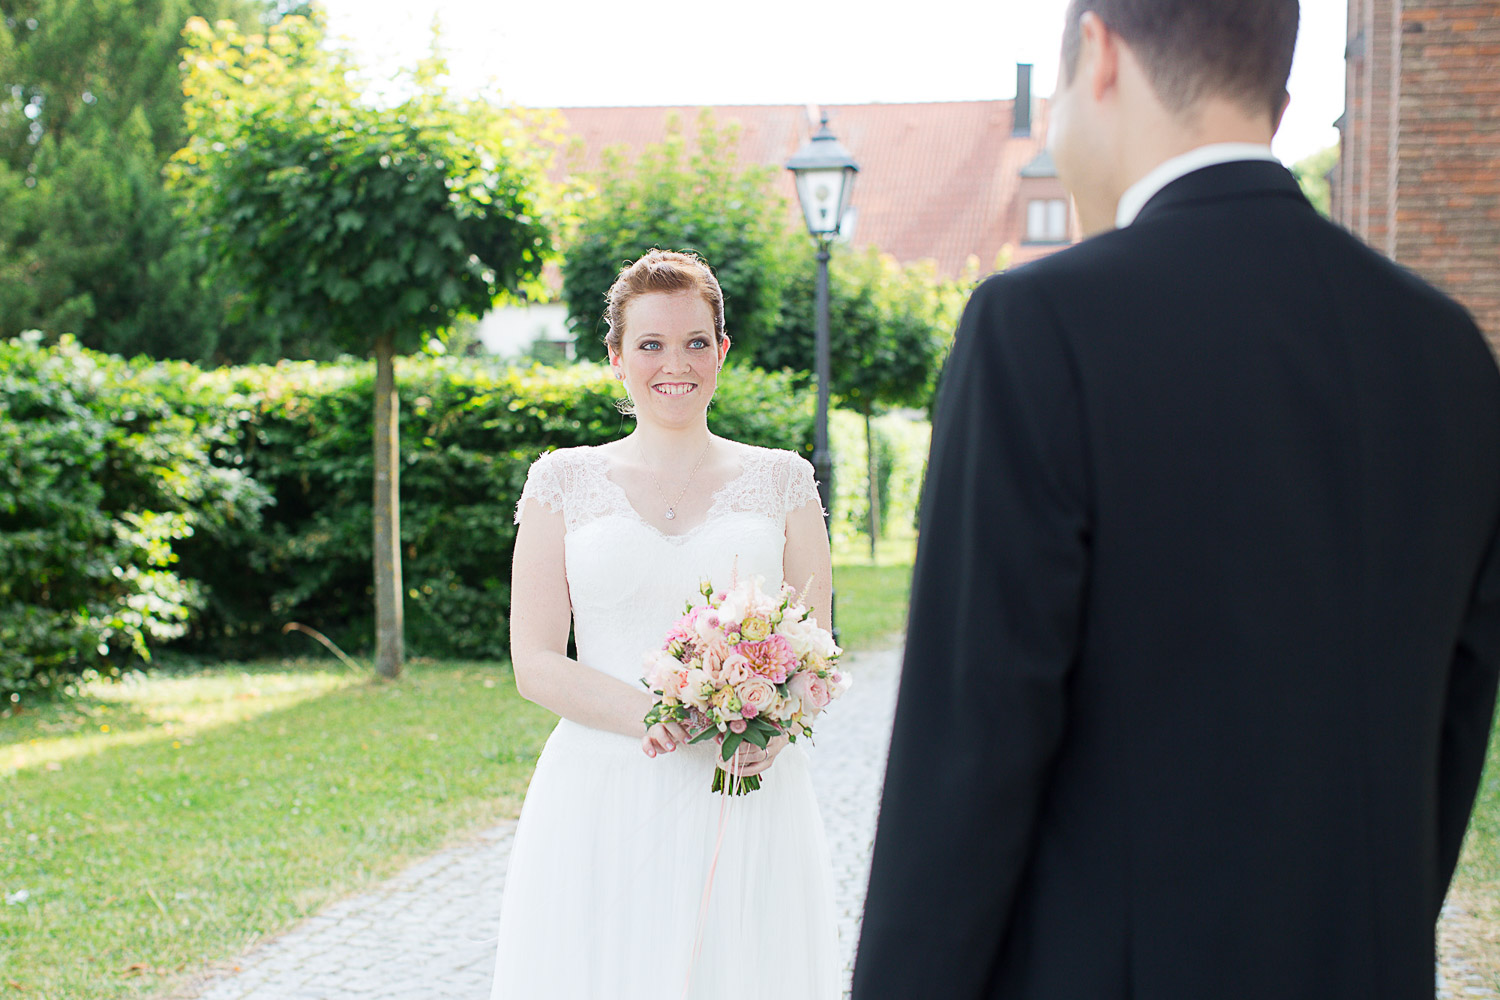 Heiraten in Dillingen an der Donau